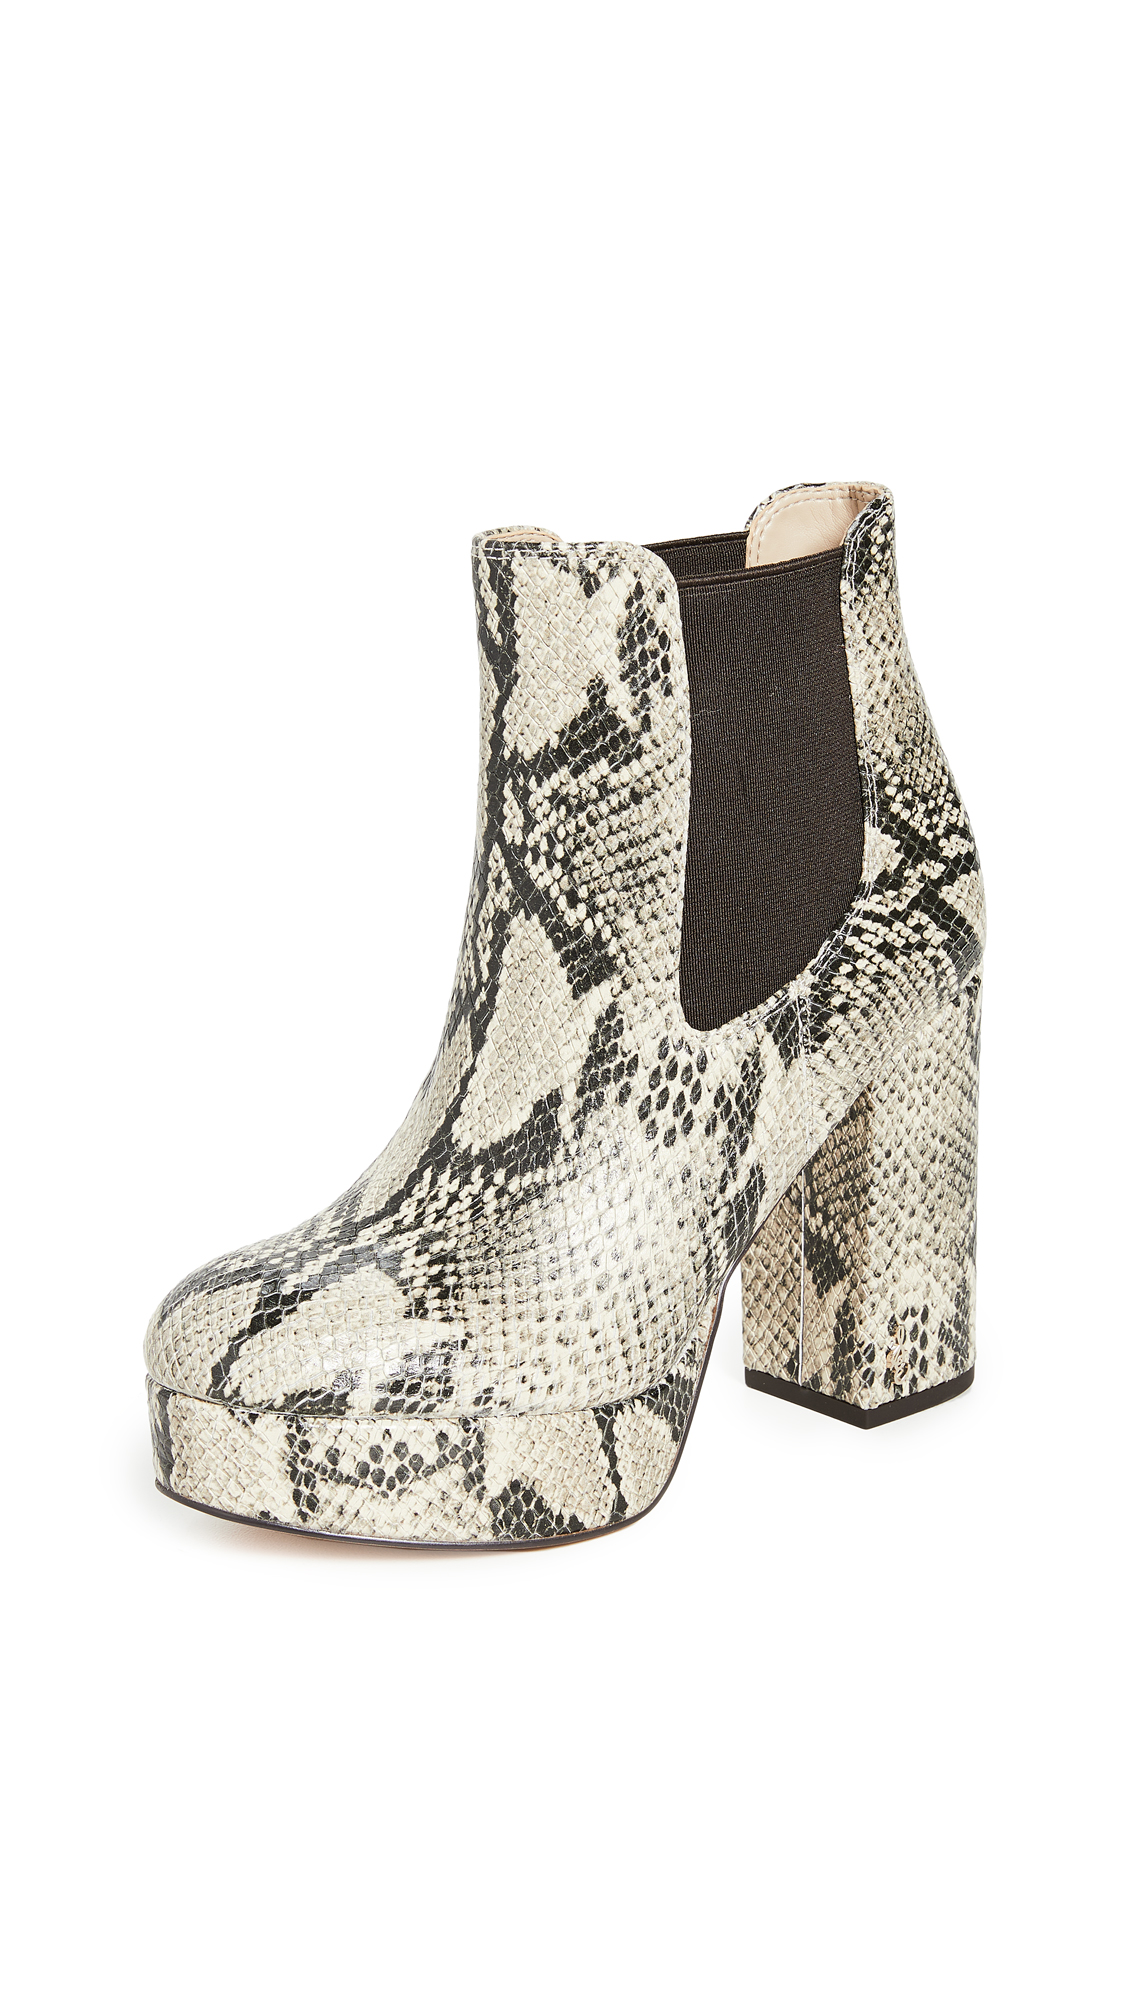 Sam Edelman Abella Booties - 50% Off Sale